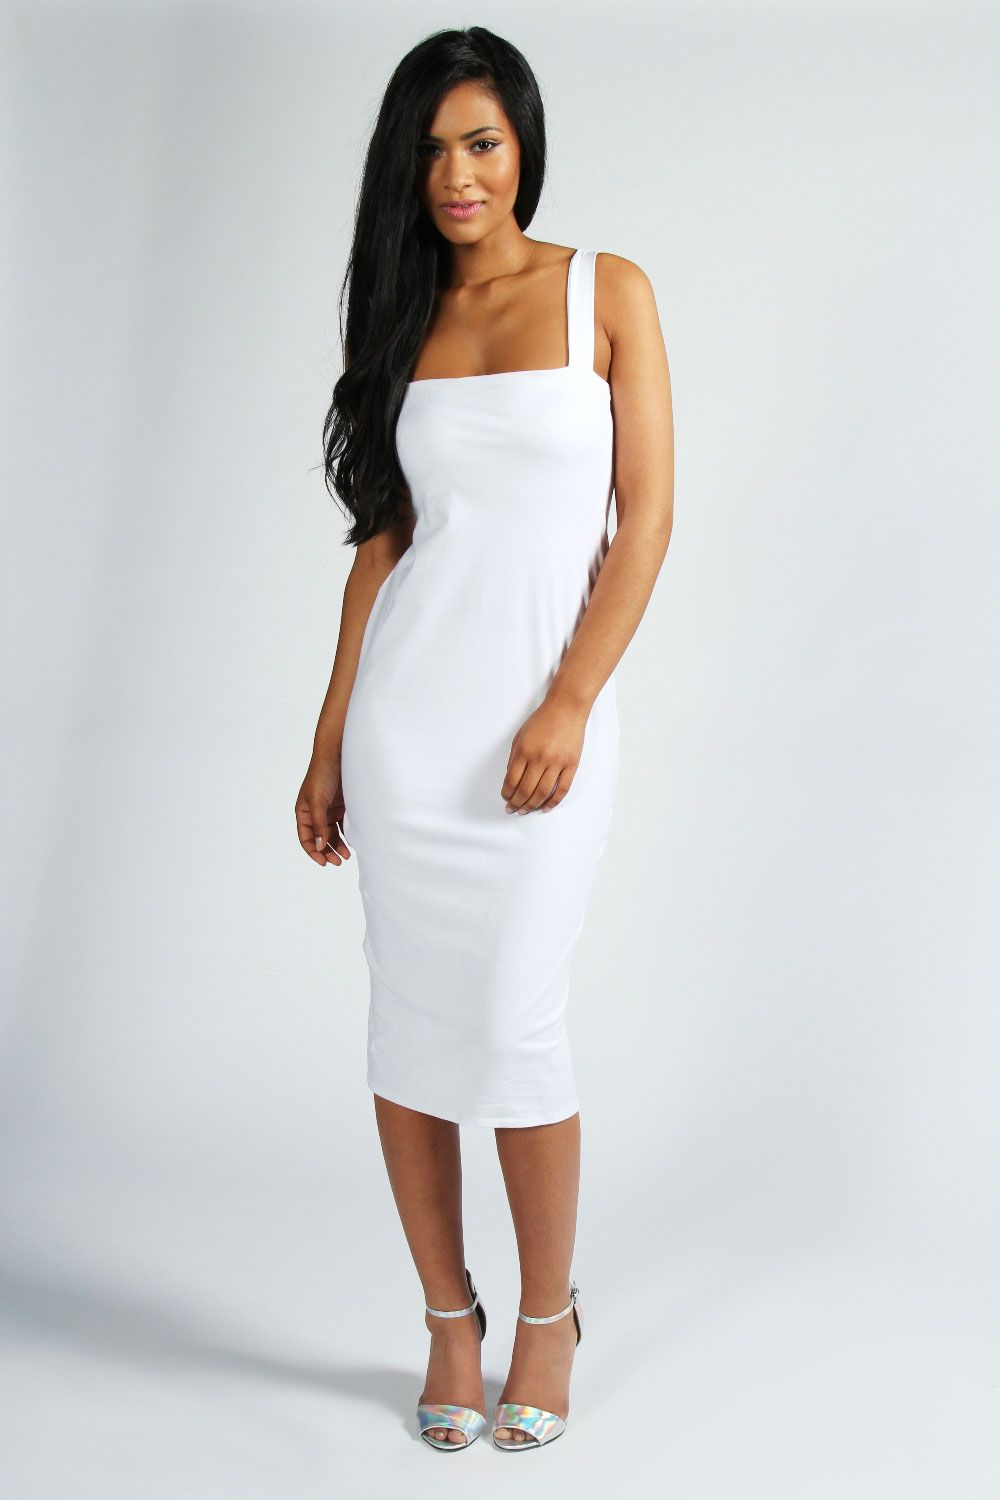 Jen Square Neck Bodycon Midi Dress | Lace, Dress in and .tyxgb76aj ...